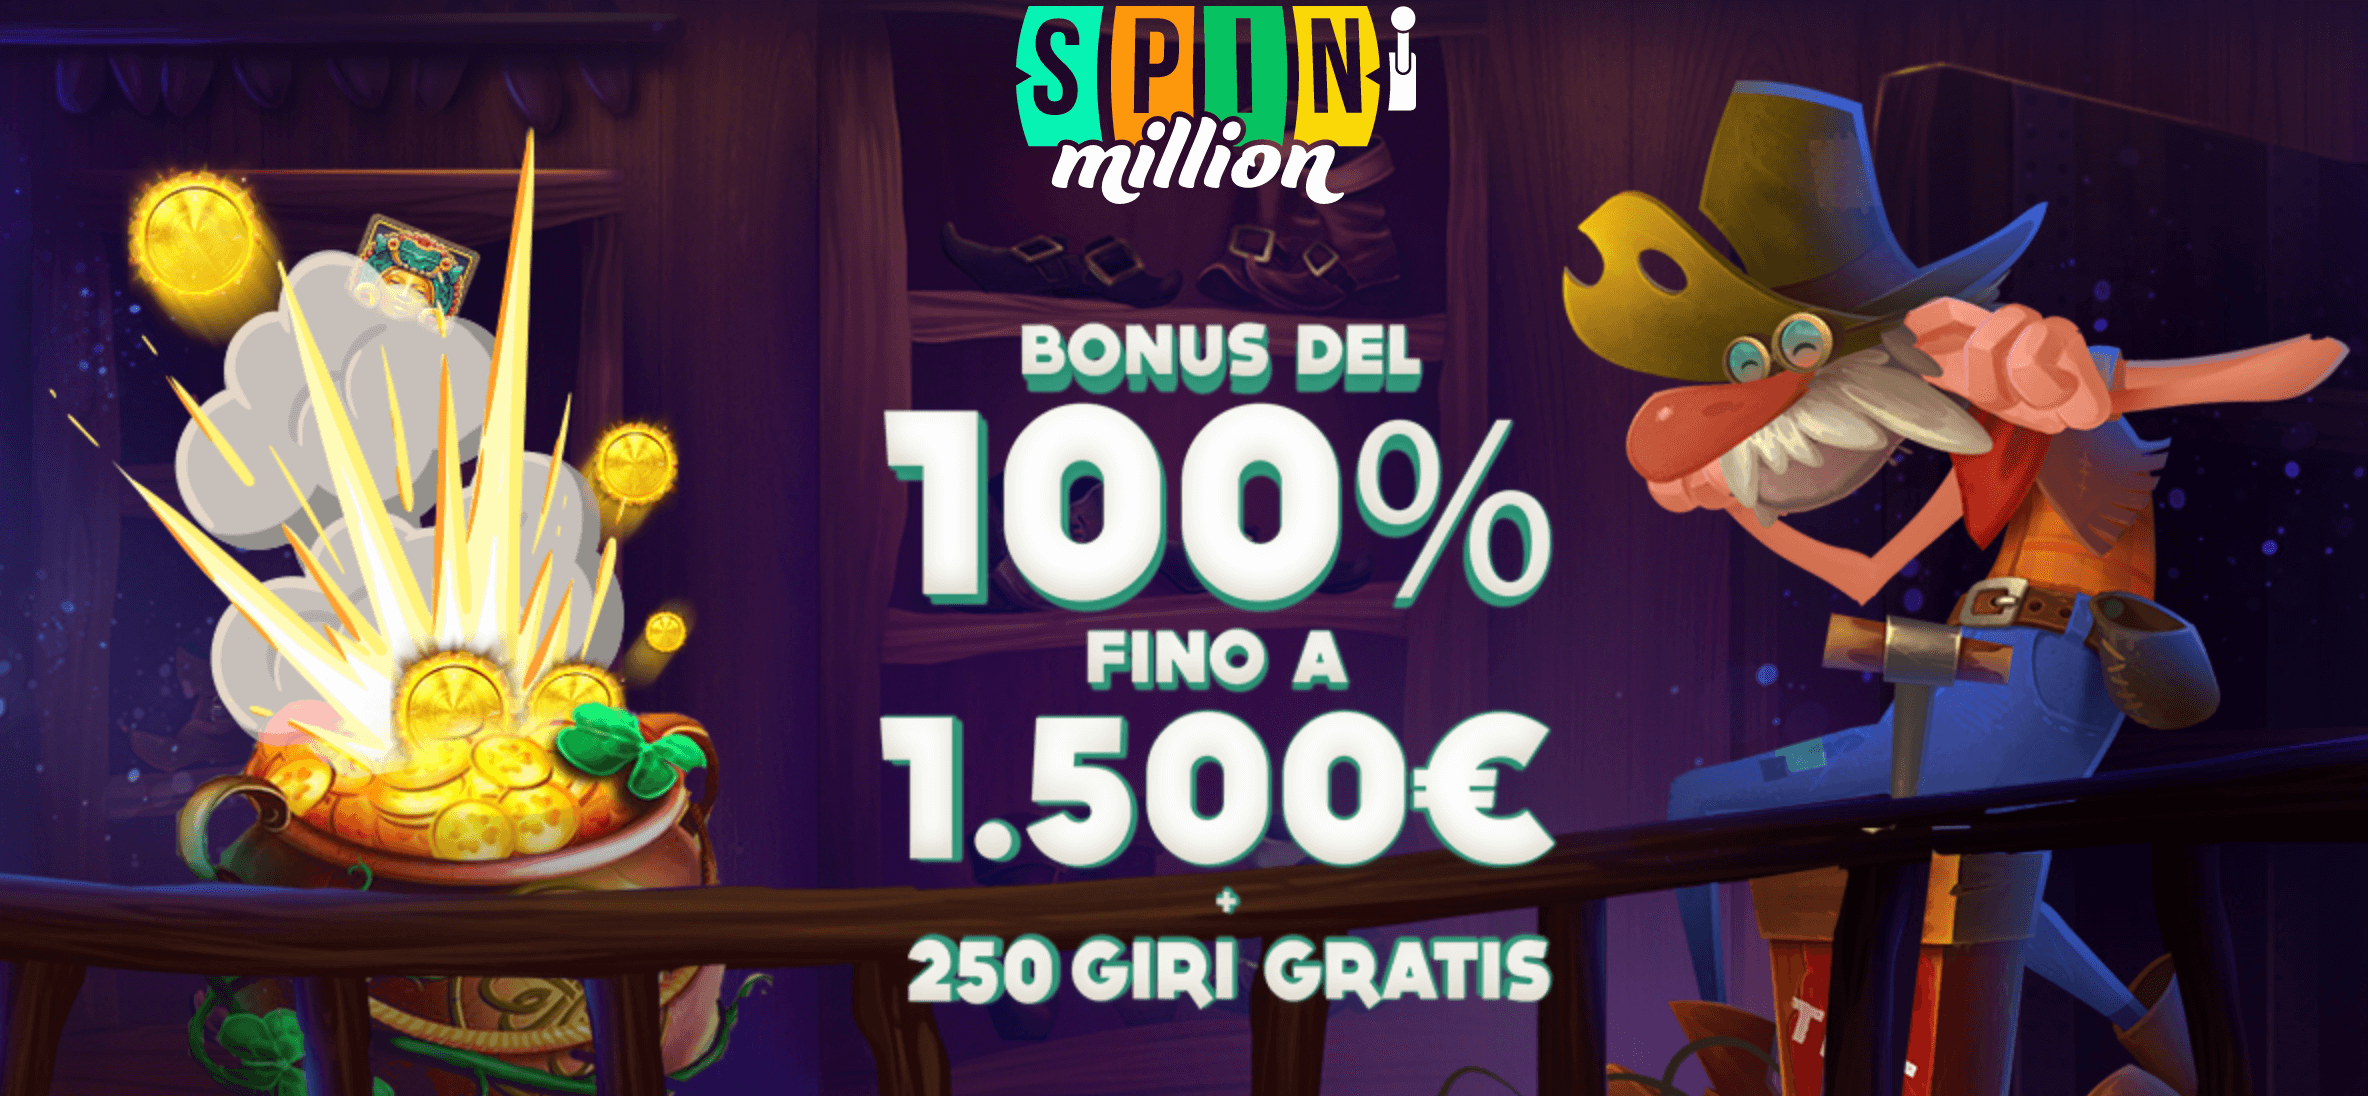 spin million casino bonus benvenuto